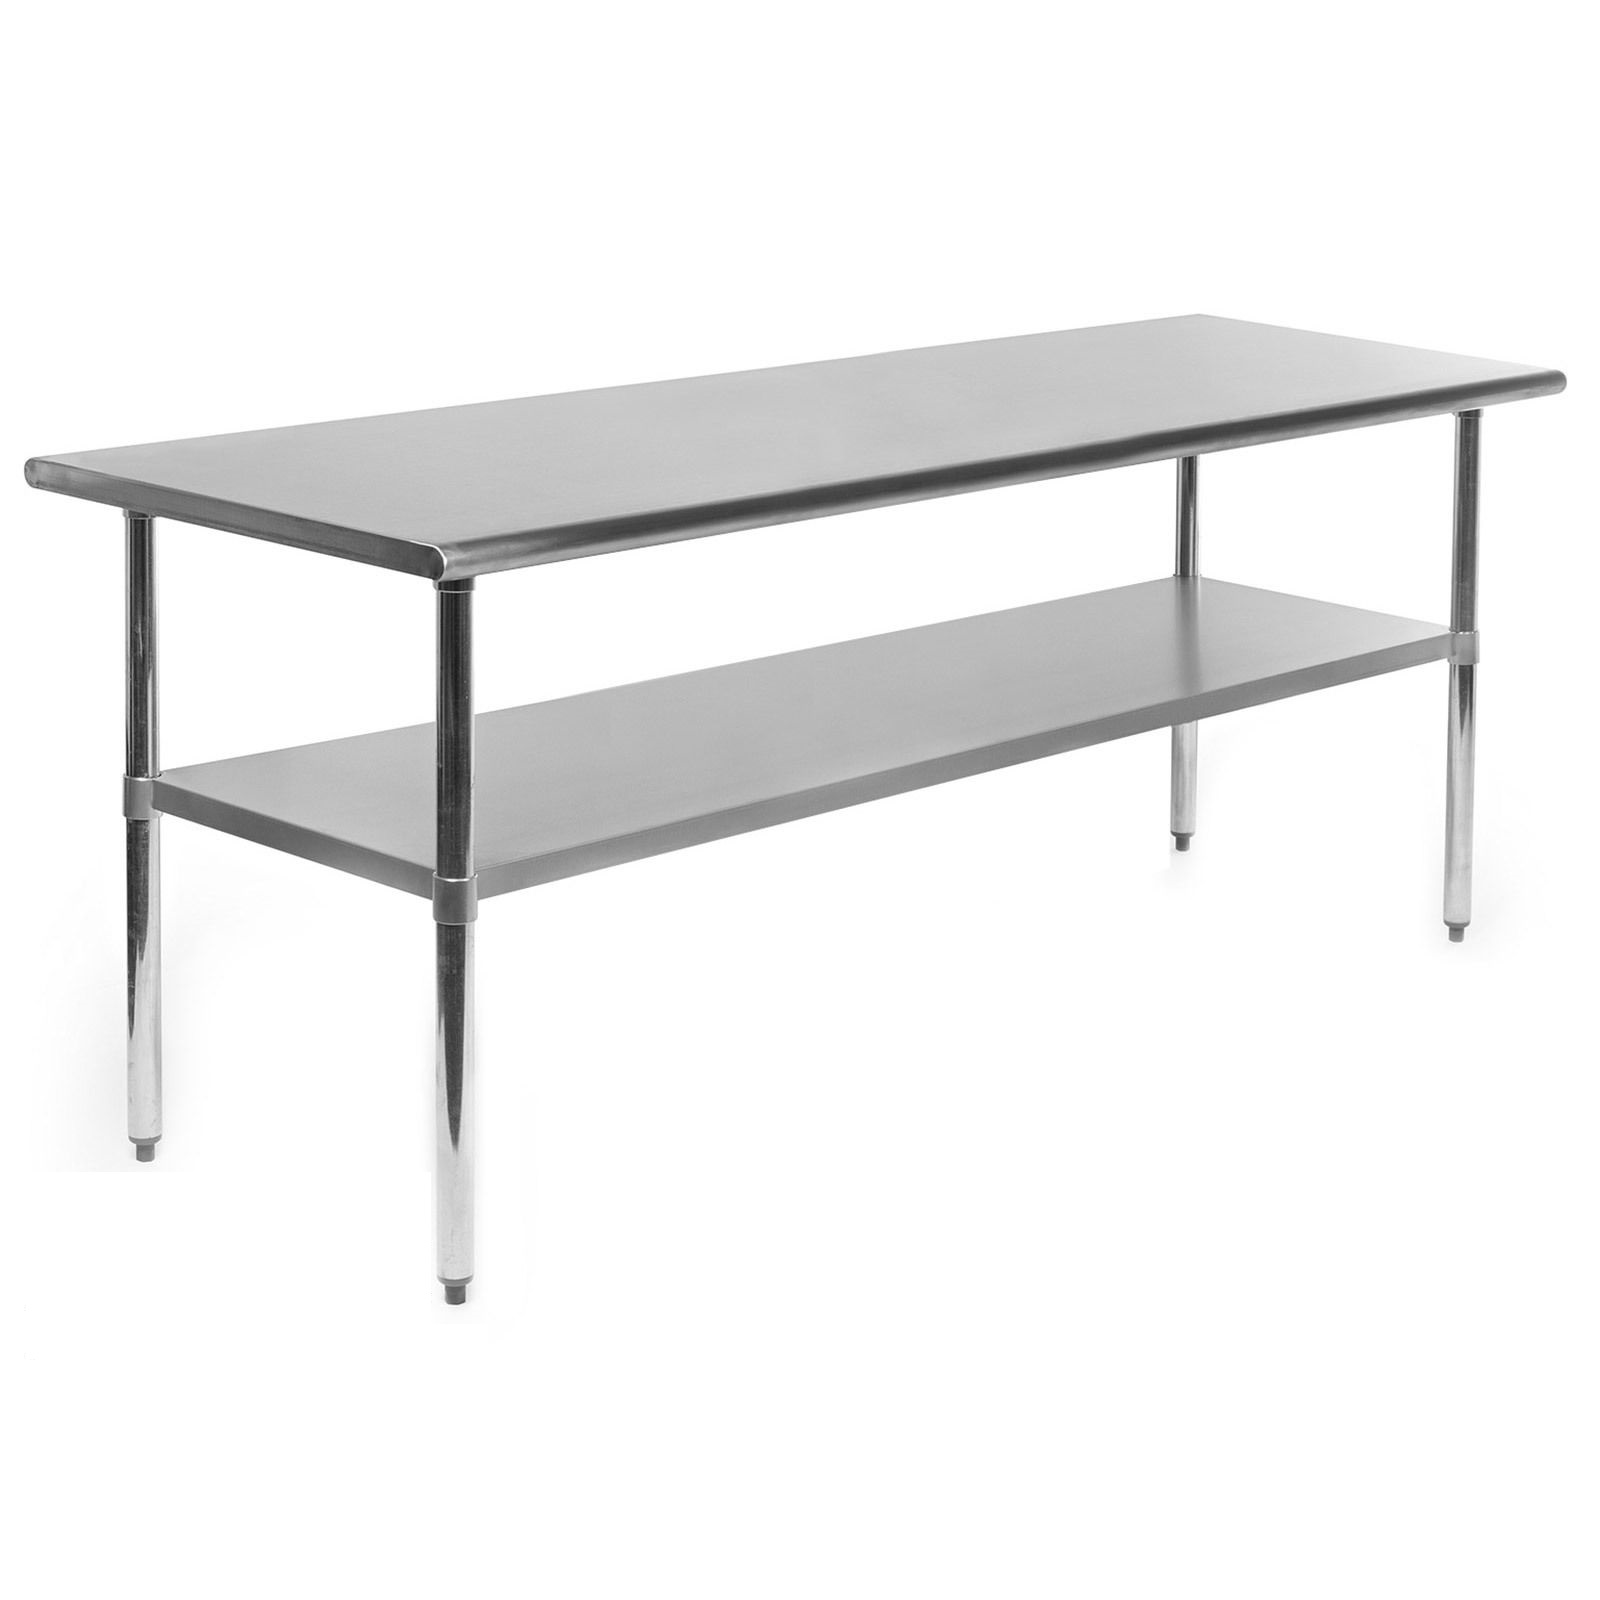 NEW STAINLESS STEEL TABLES FT FT FT FOOD RESTAURANT MEAT - 4 foot stainless steel table